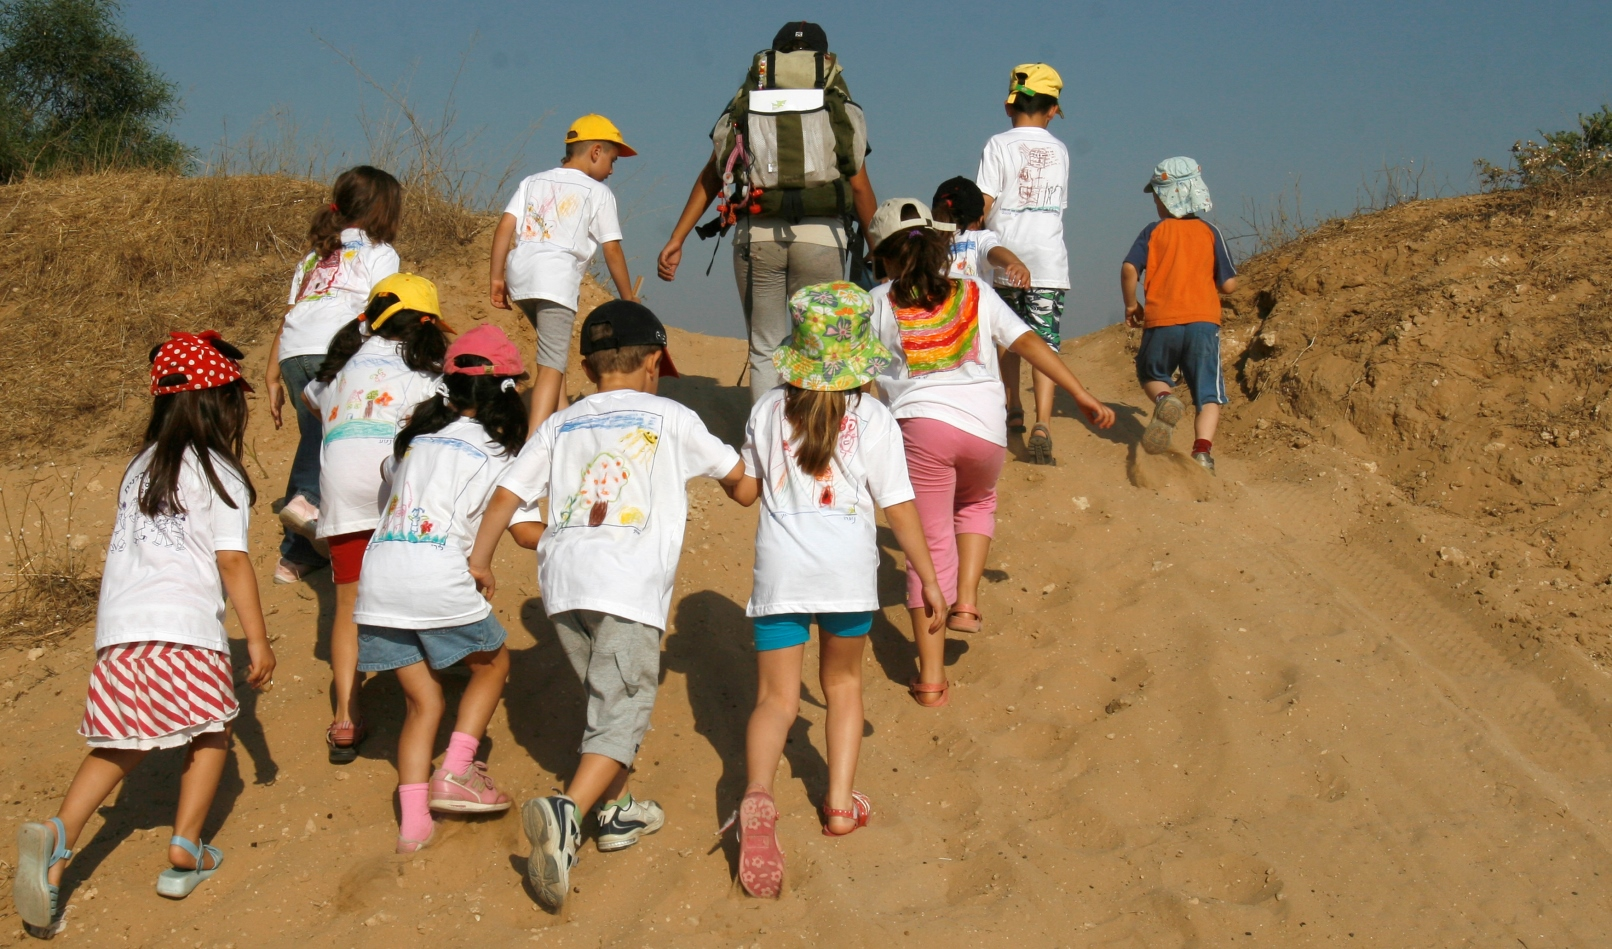 Israeli preschoolers hiking in Ashdod in the summertime. Photo by Nati Shohat/FLASH90